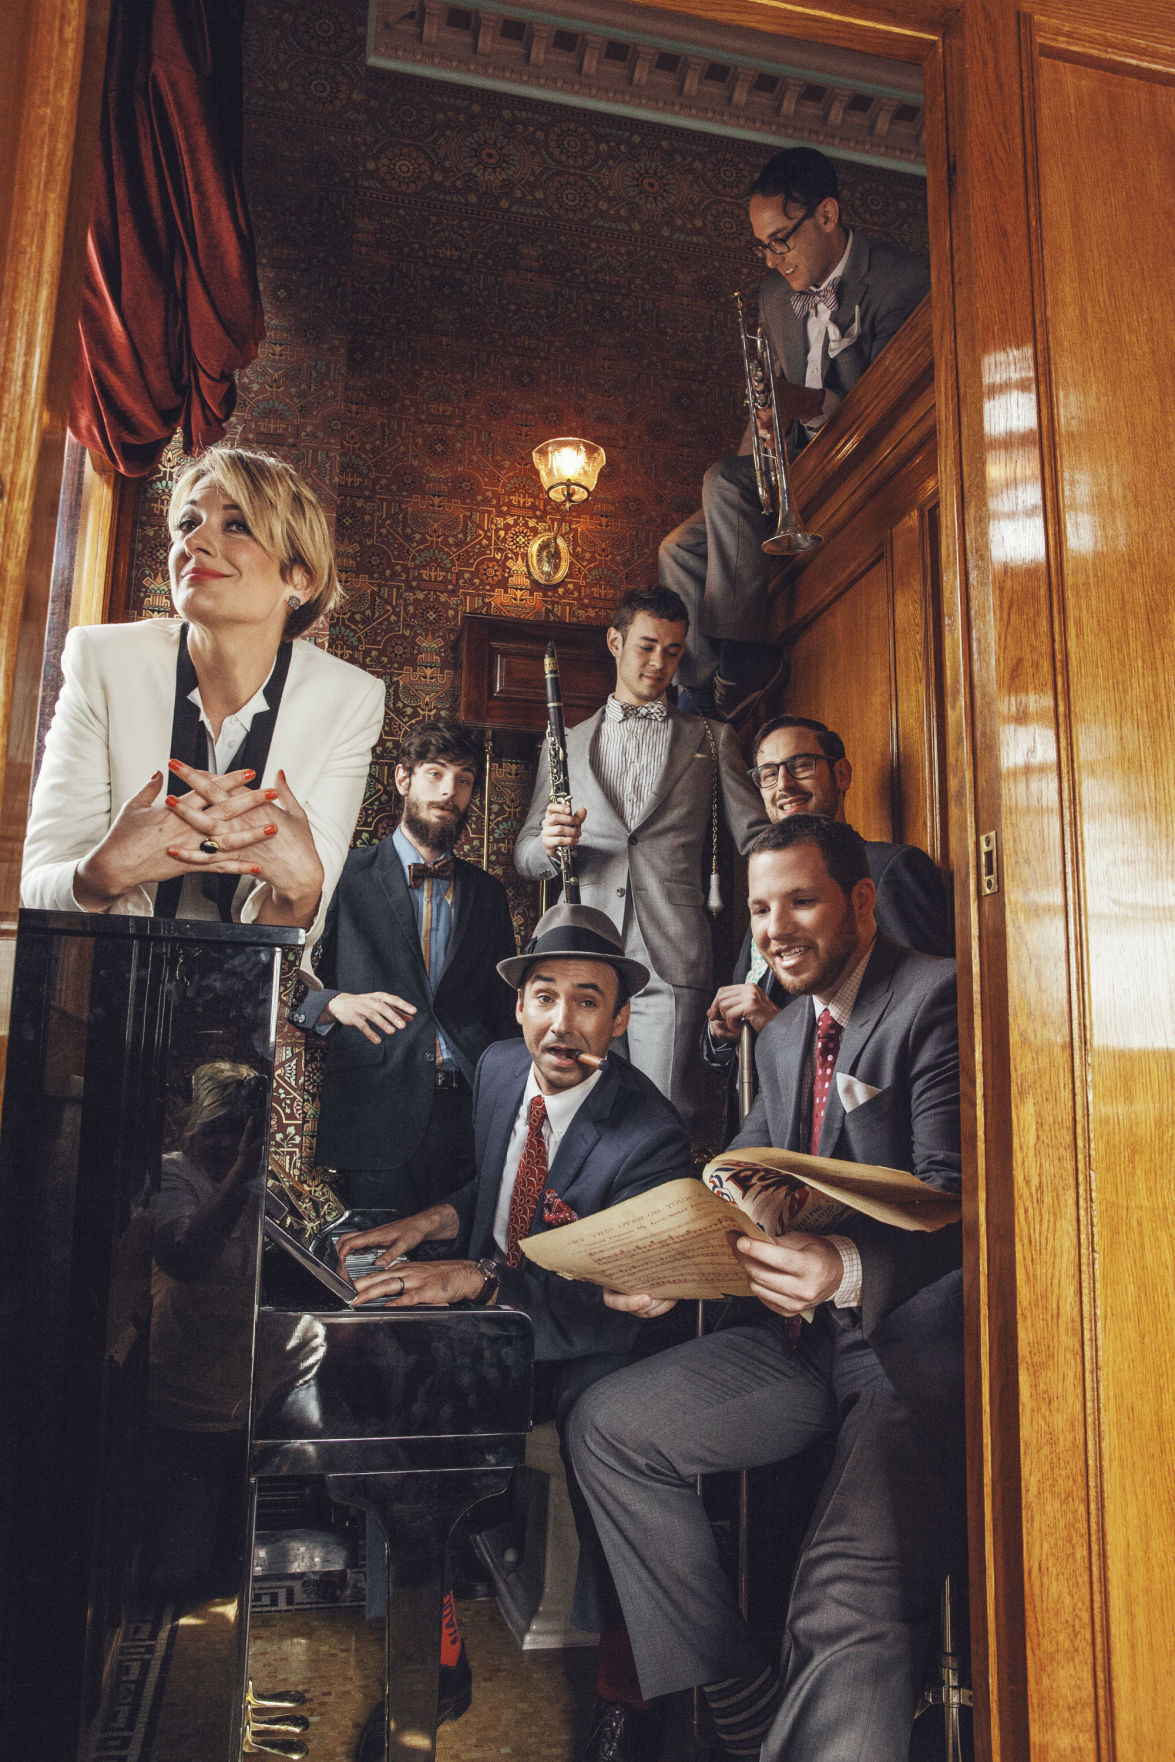 alive and kickin 39 hot sardines 39 straight up jazz to ignite gallagher bluedorn audience. Black Bedroom Furniture Sets. Home Design Ideas